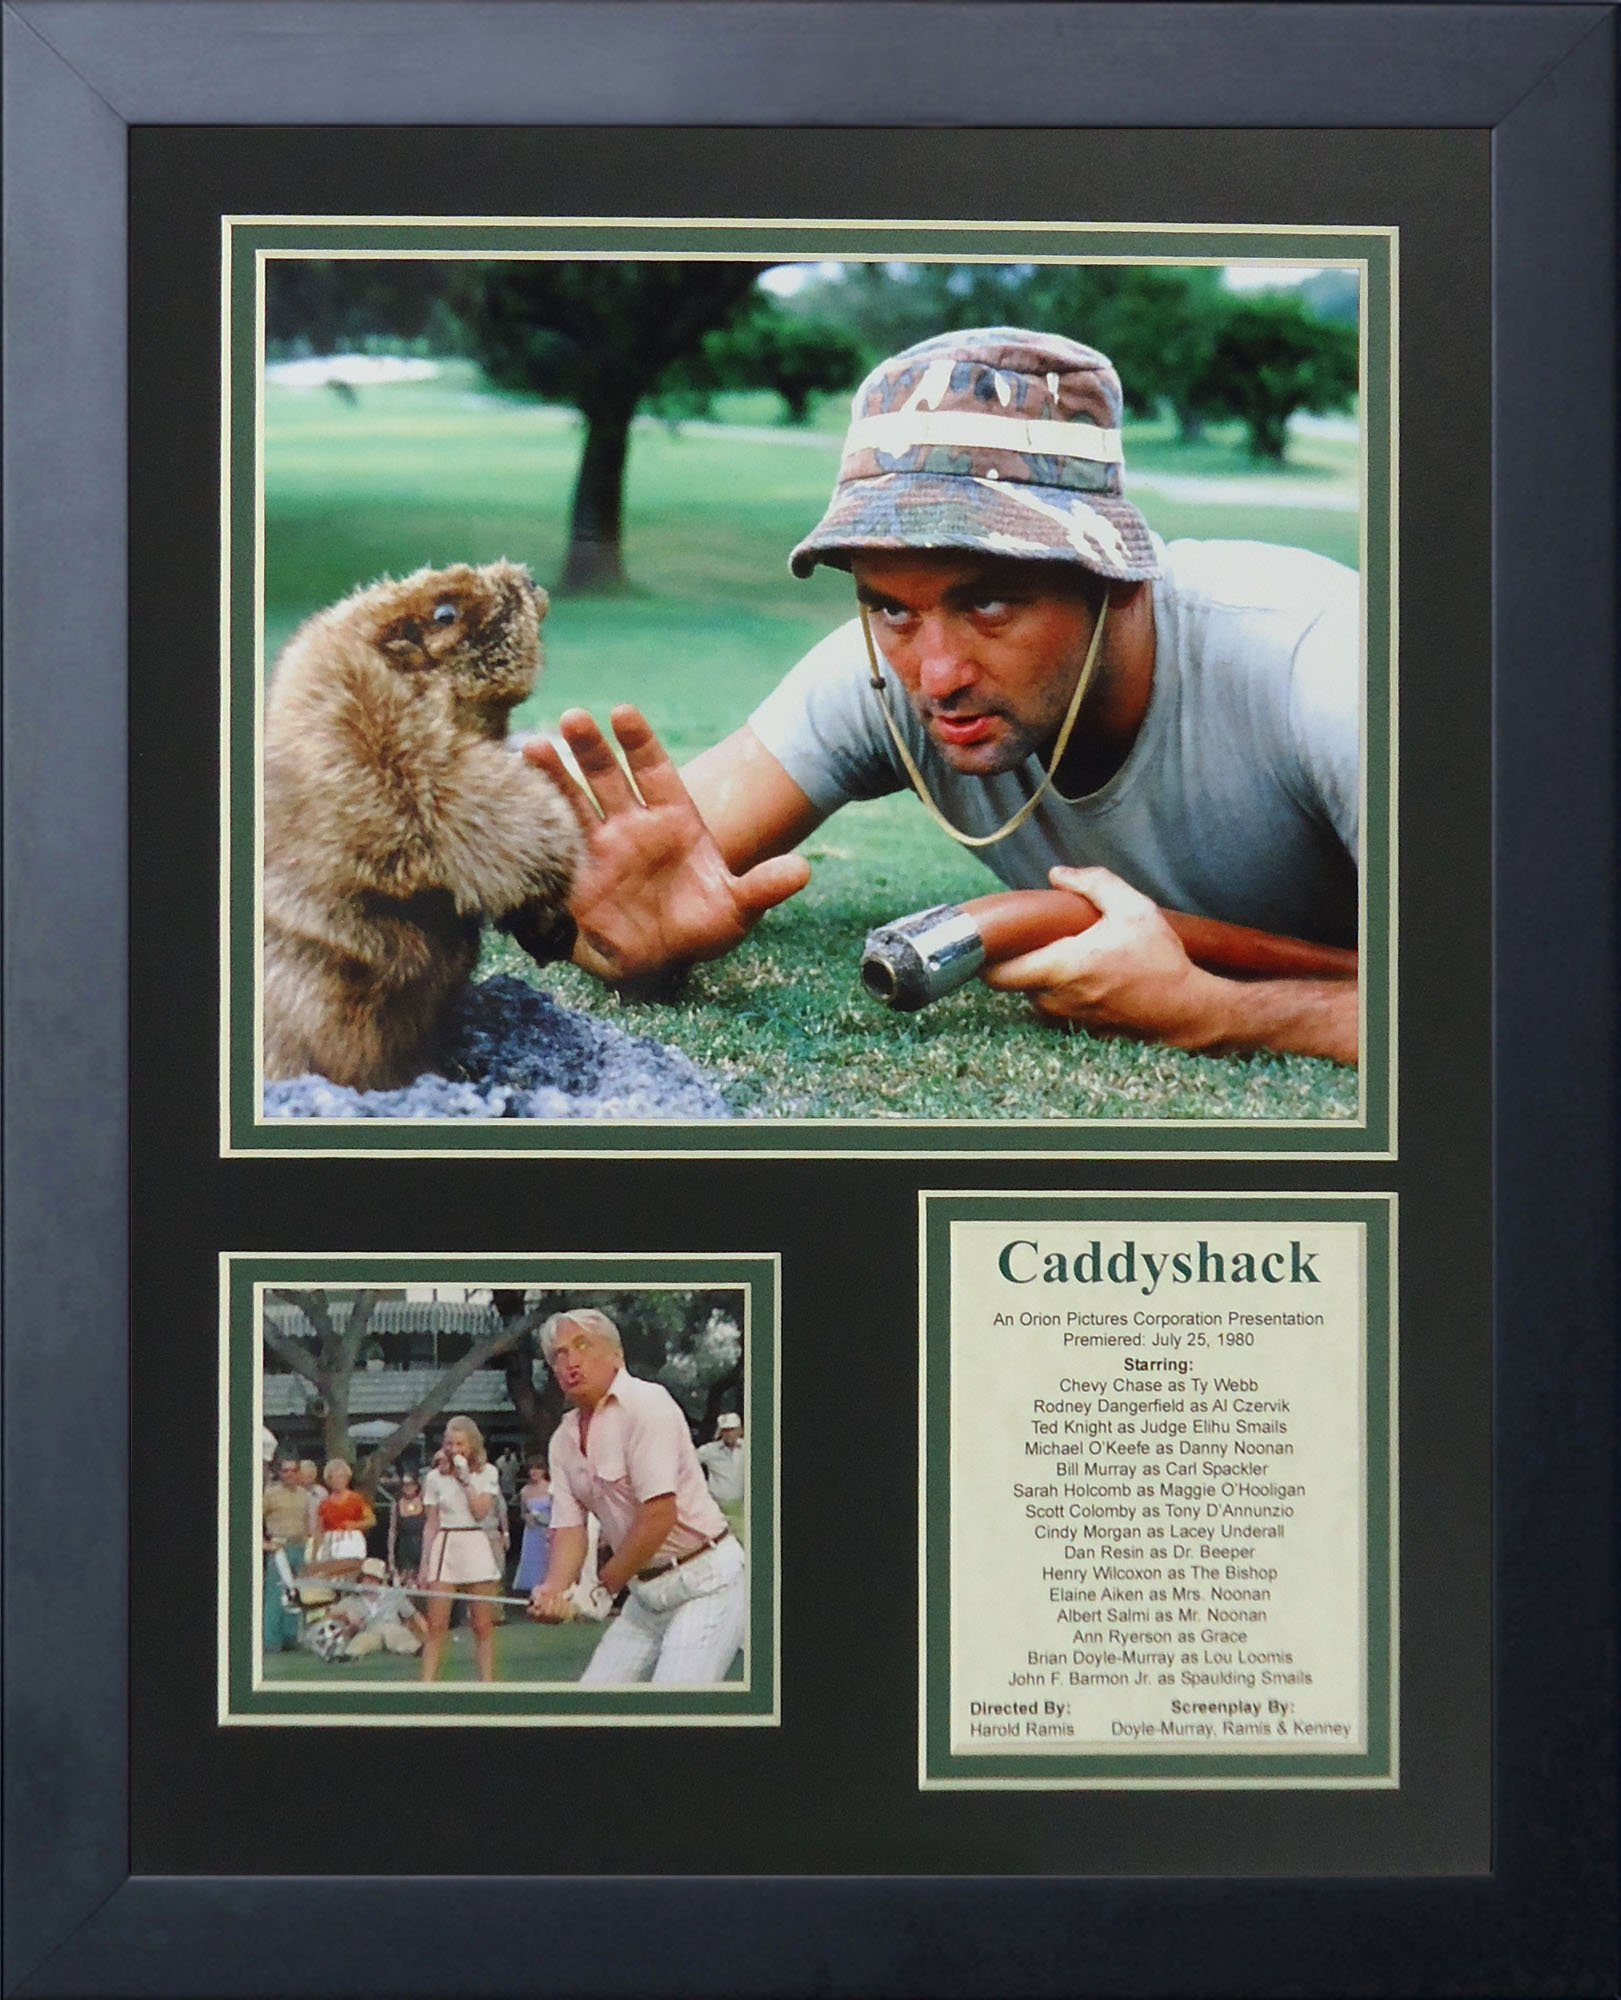 Legends Never Die Caddyshack Framed Photo Collage, 11x14-Inch by Legends Never Die